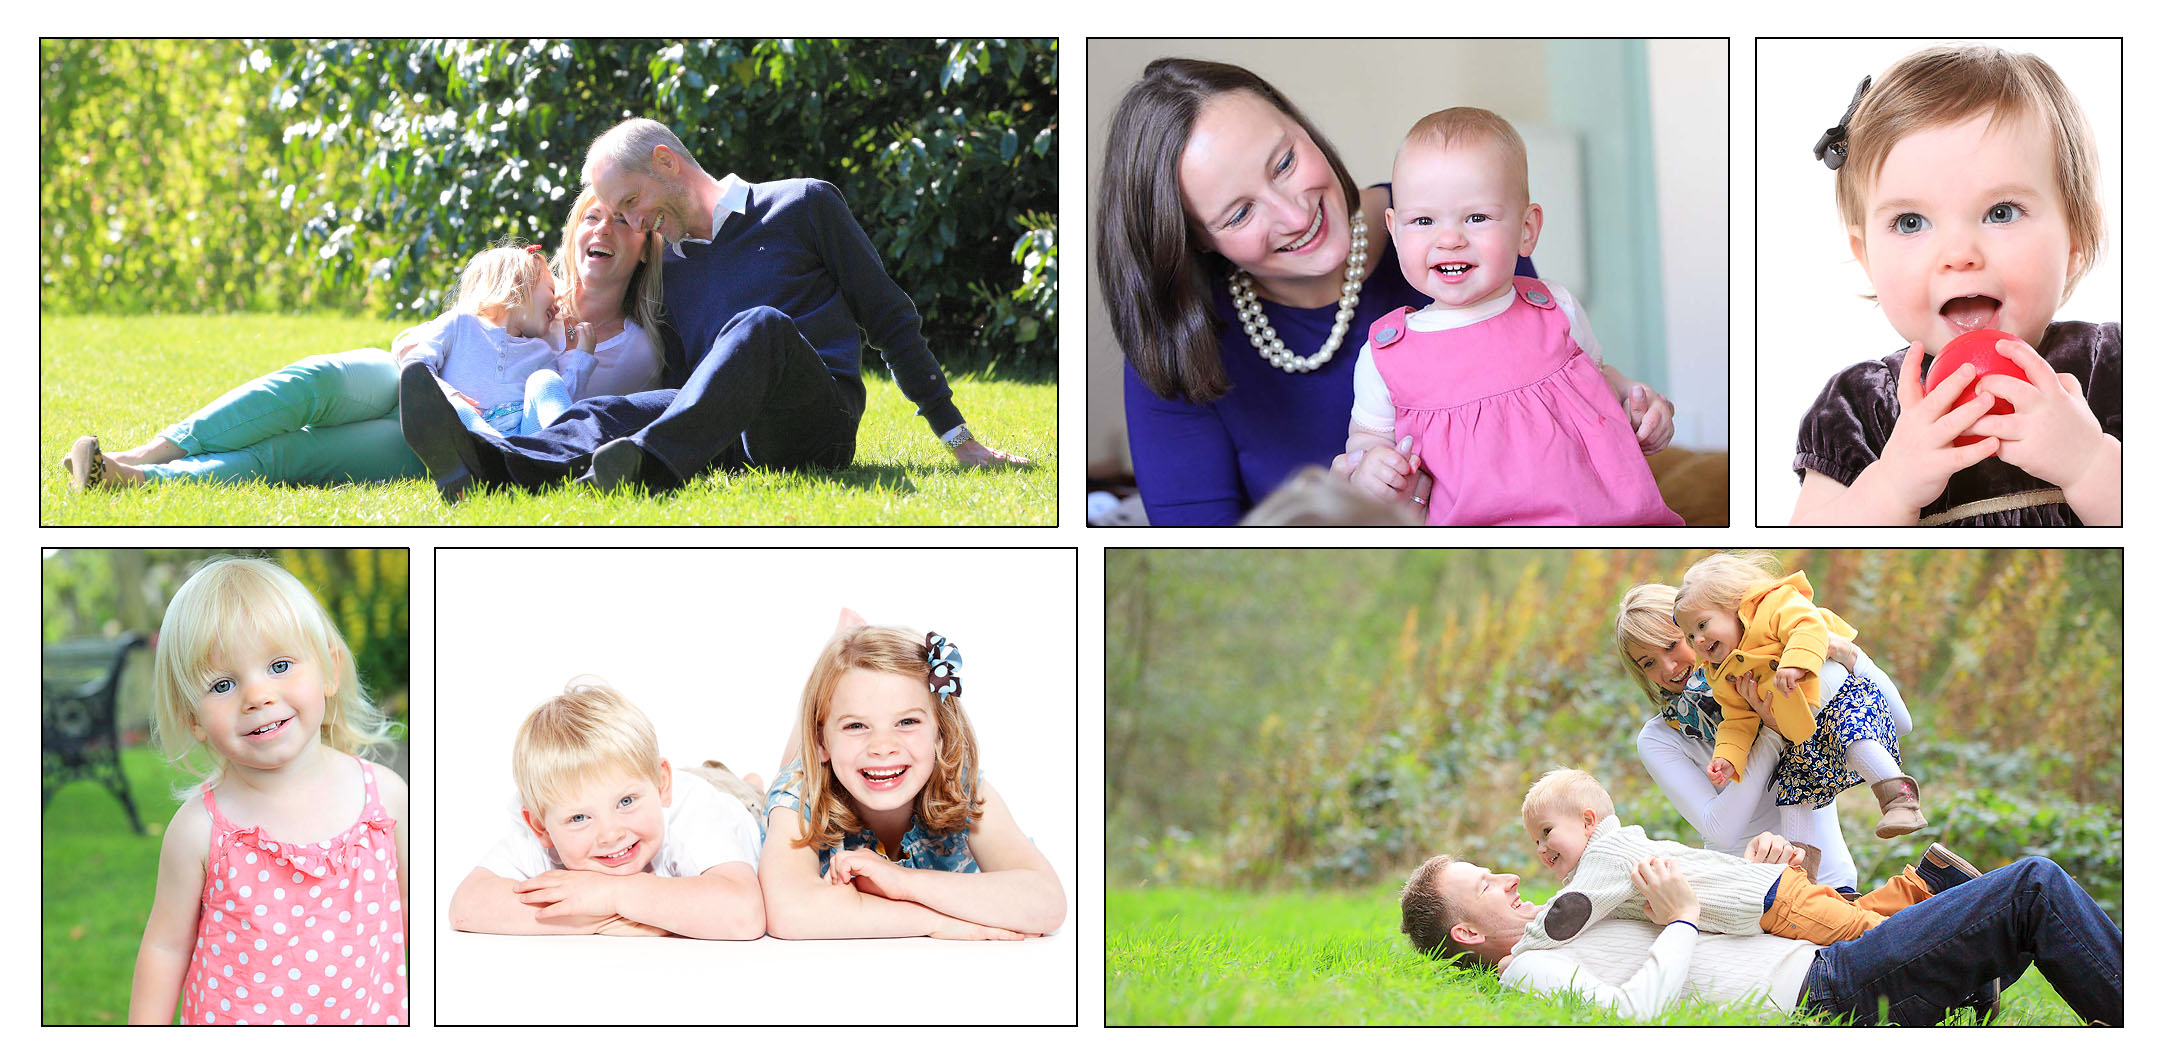 Family Photography In Harrogate, Leeds & York Areas